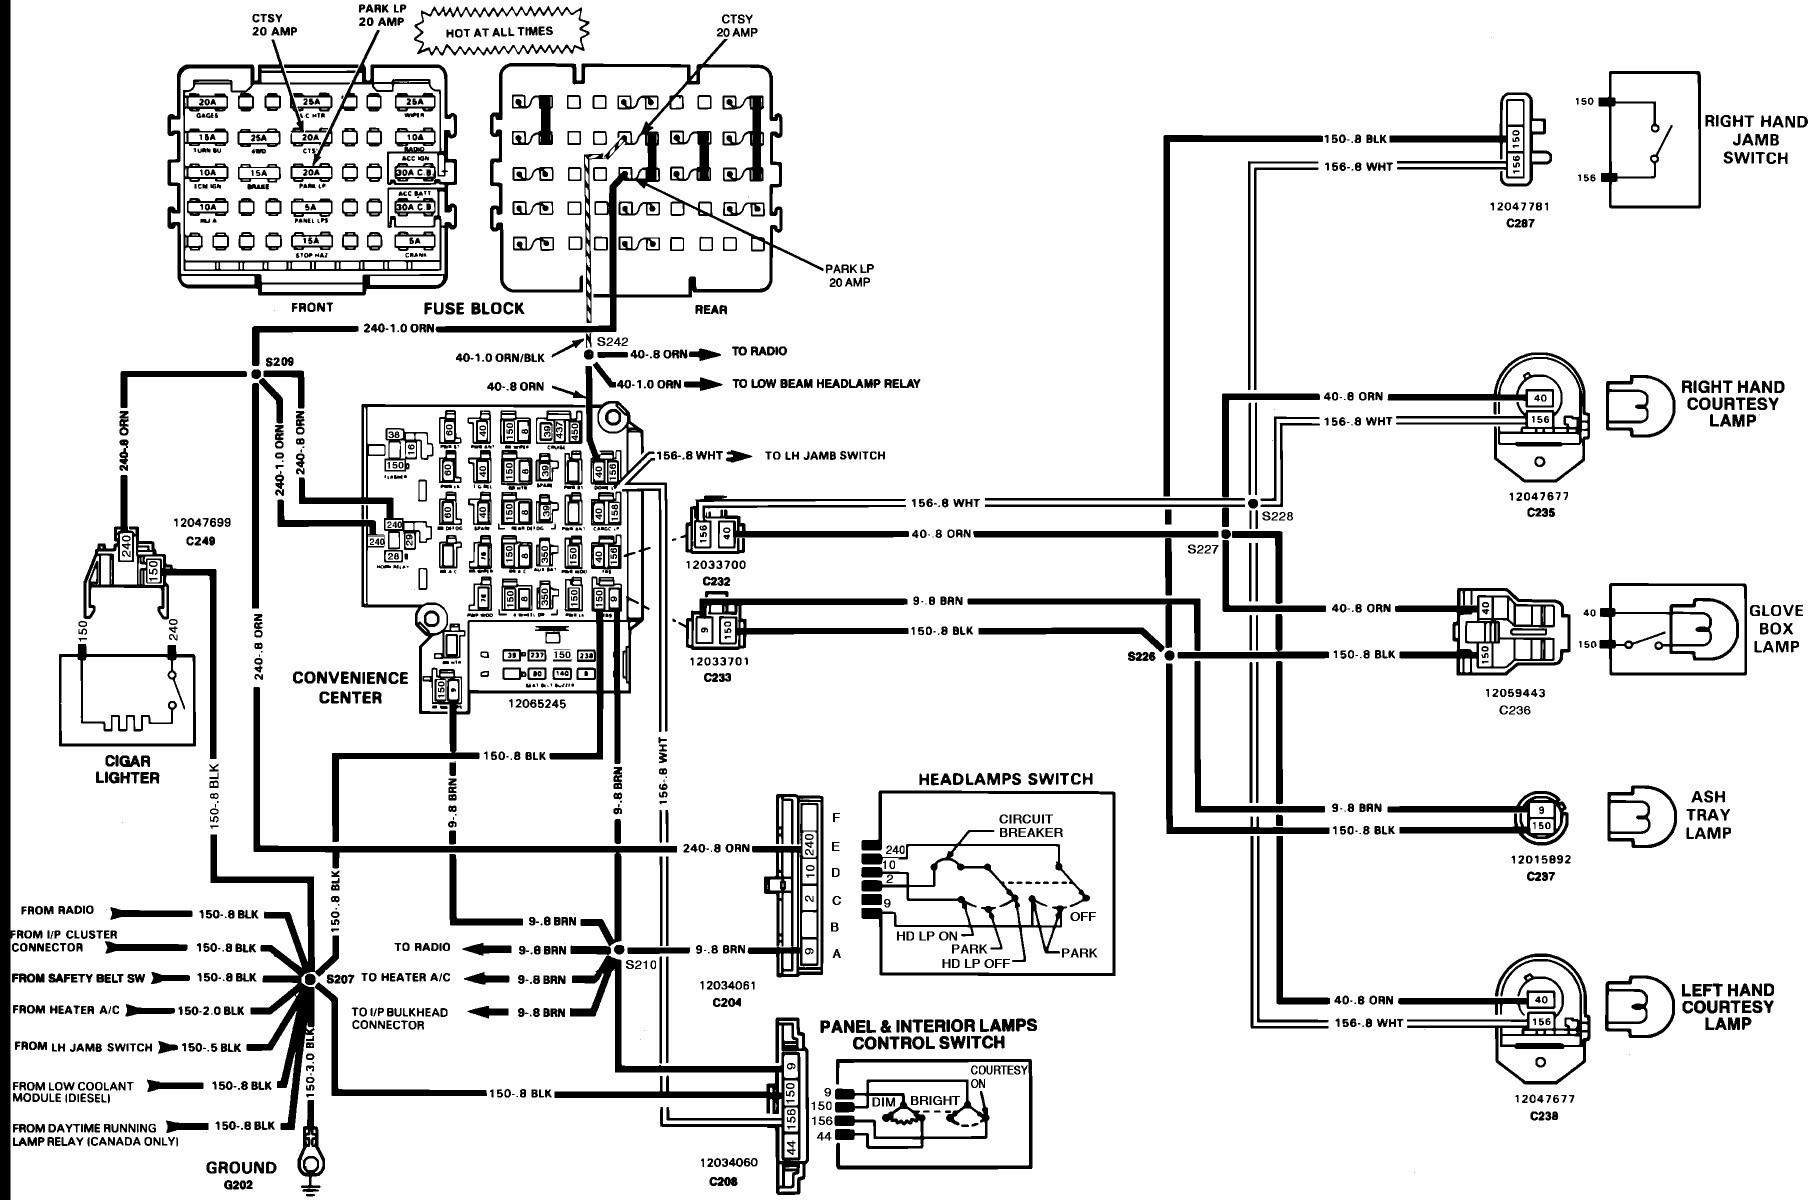 C15 Cat Ecm Pin Wiring Diagram Free Download | Wiring Liry  S Ecm Wiring Diagram on transmission diagram, ecm repair, john deere snowblower parts diagram, clutch diagram, horn diagram, sensor diagram, ecm motor, ignition diagram, starter diagram, ecm pin diagram, wiper motor diagram, fuel injection diagram, microprocessor diagram, ecm computer diagram, radiator fan diagram, fuel system diagram, spark plugs diagram, power window diagram, code diagram, fuel pump diagram,